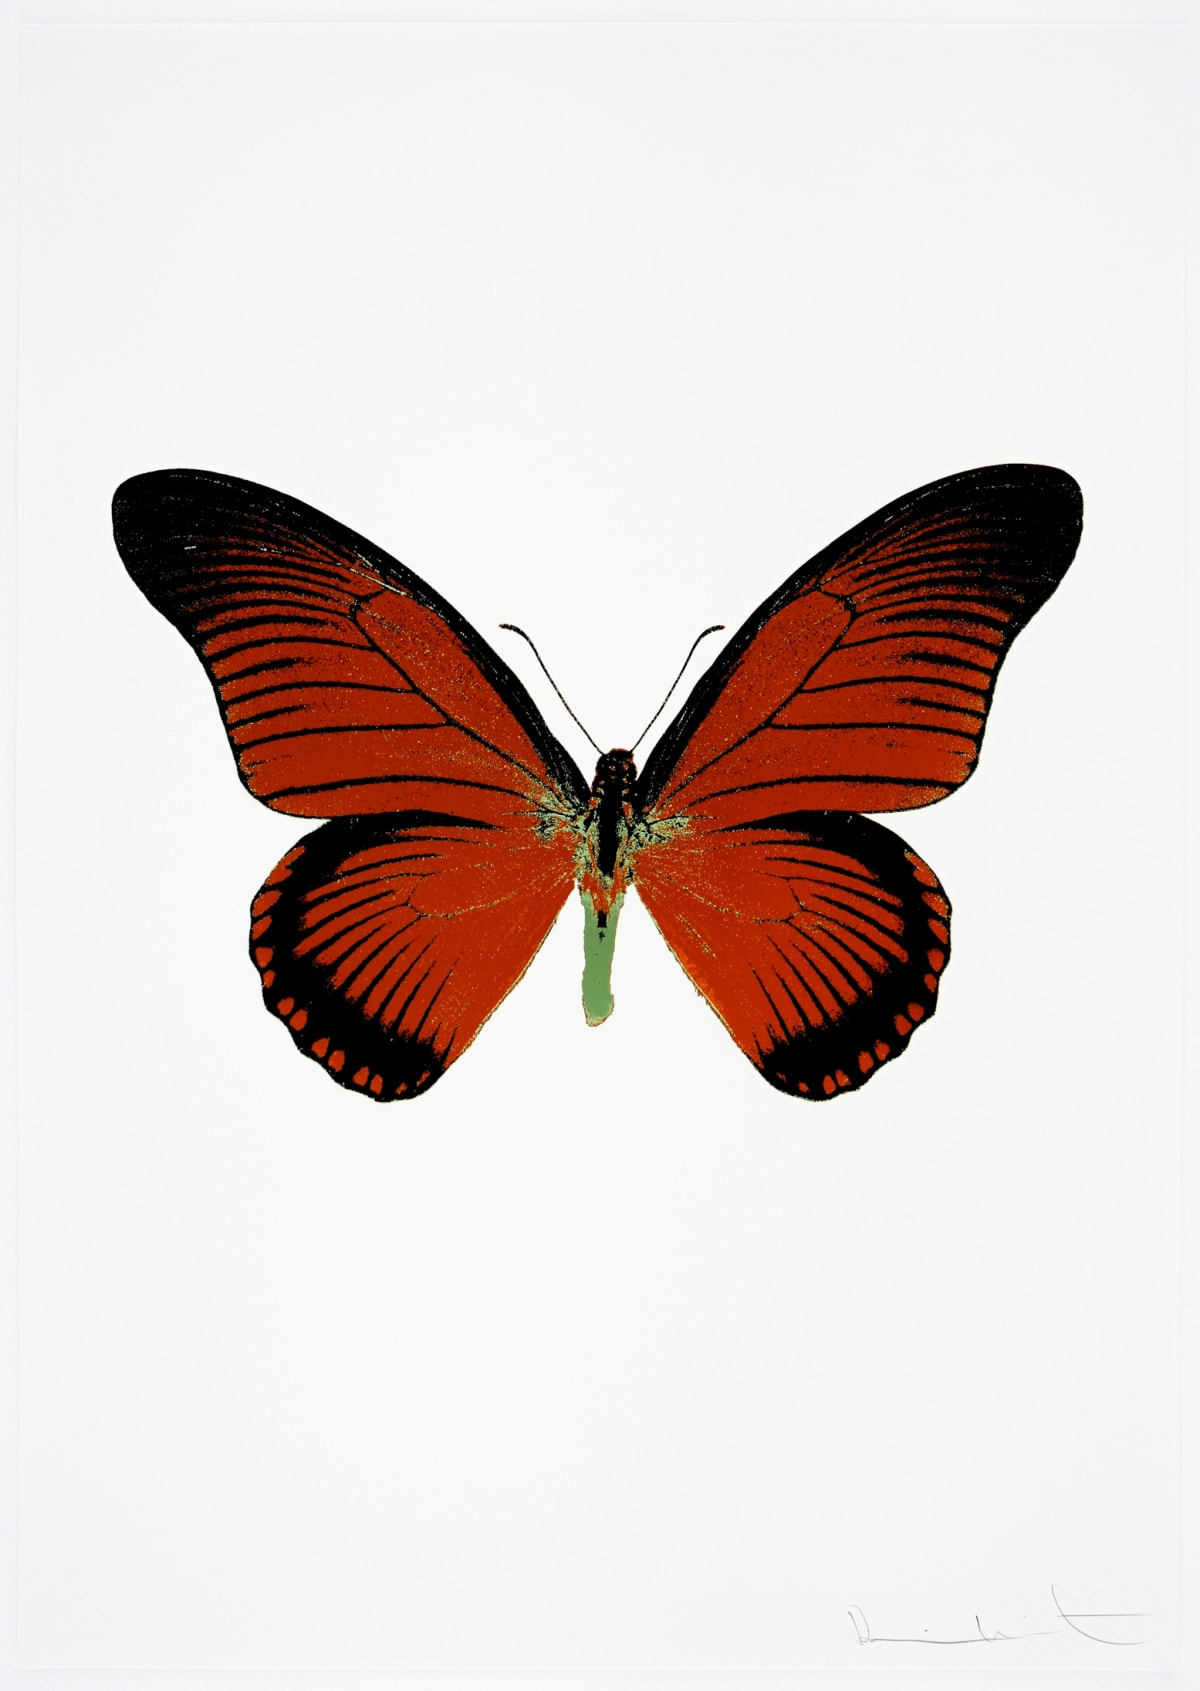 Damien Hirst The Souls IV - Prairie Copper/Raven Black/Leaf Green Damien Hirst butterfly foil print for sale Damien Hirst print for sale , 2010 3 colour foil block on 300gsm Arches 88 archival paper. Signed and numbered. Published by Paul Stolper and Other Criteria 72 x 51cm OC8006 / 1418-29 Edition of 15